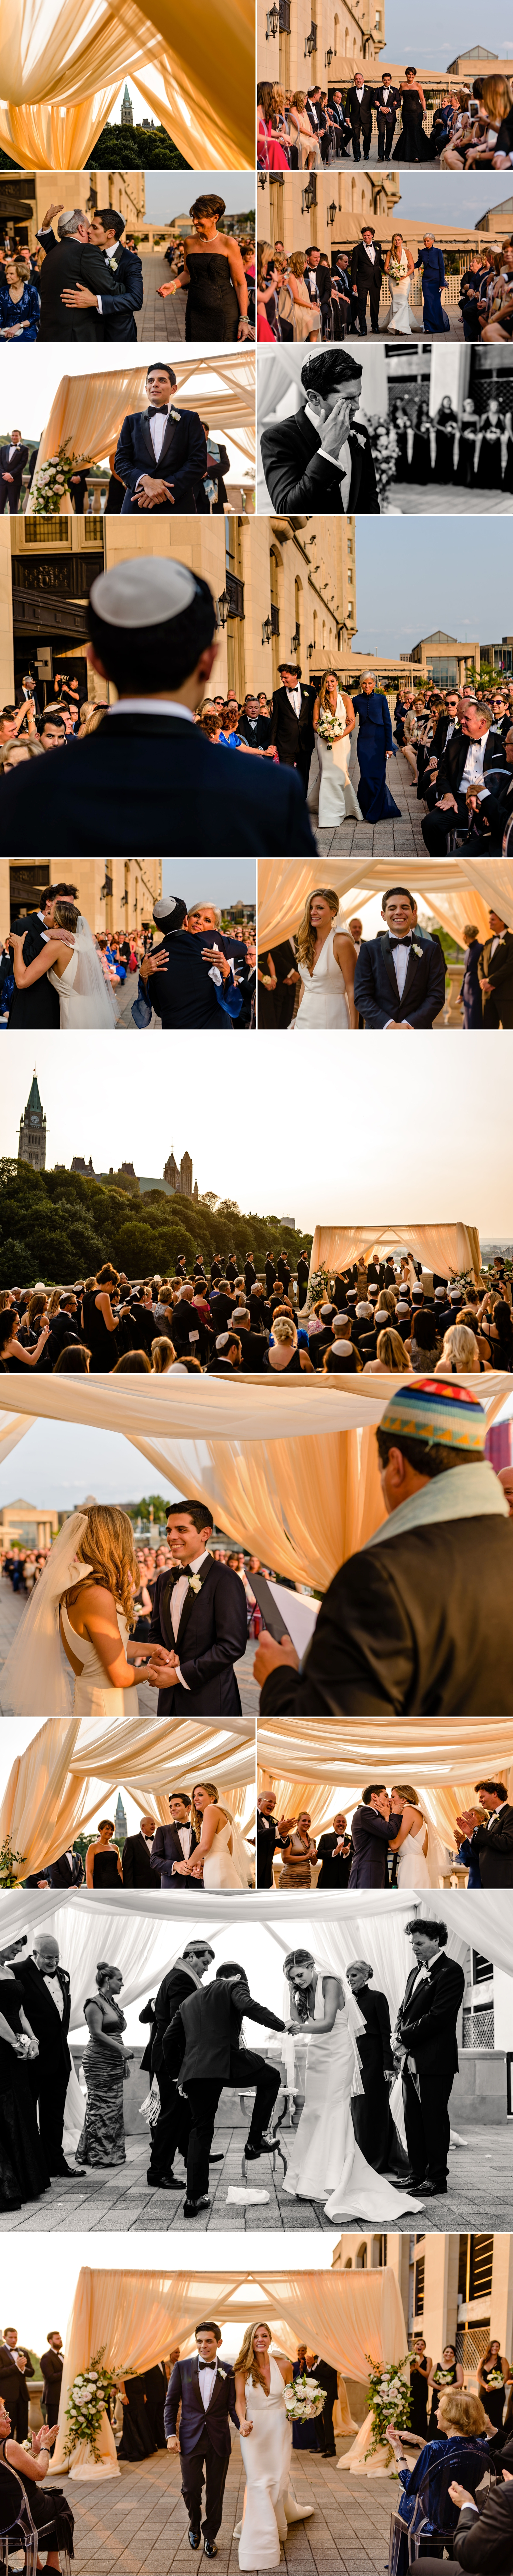 photos of candid moments during a jewish wedding ceremony at the chateau laurier wedding in ottawa ontario